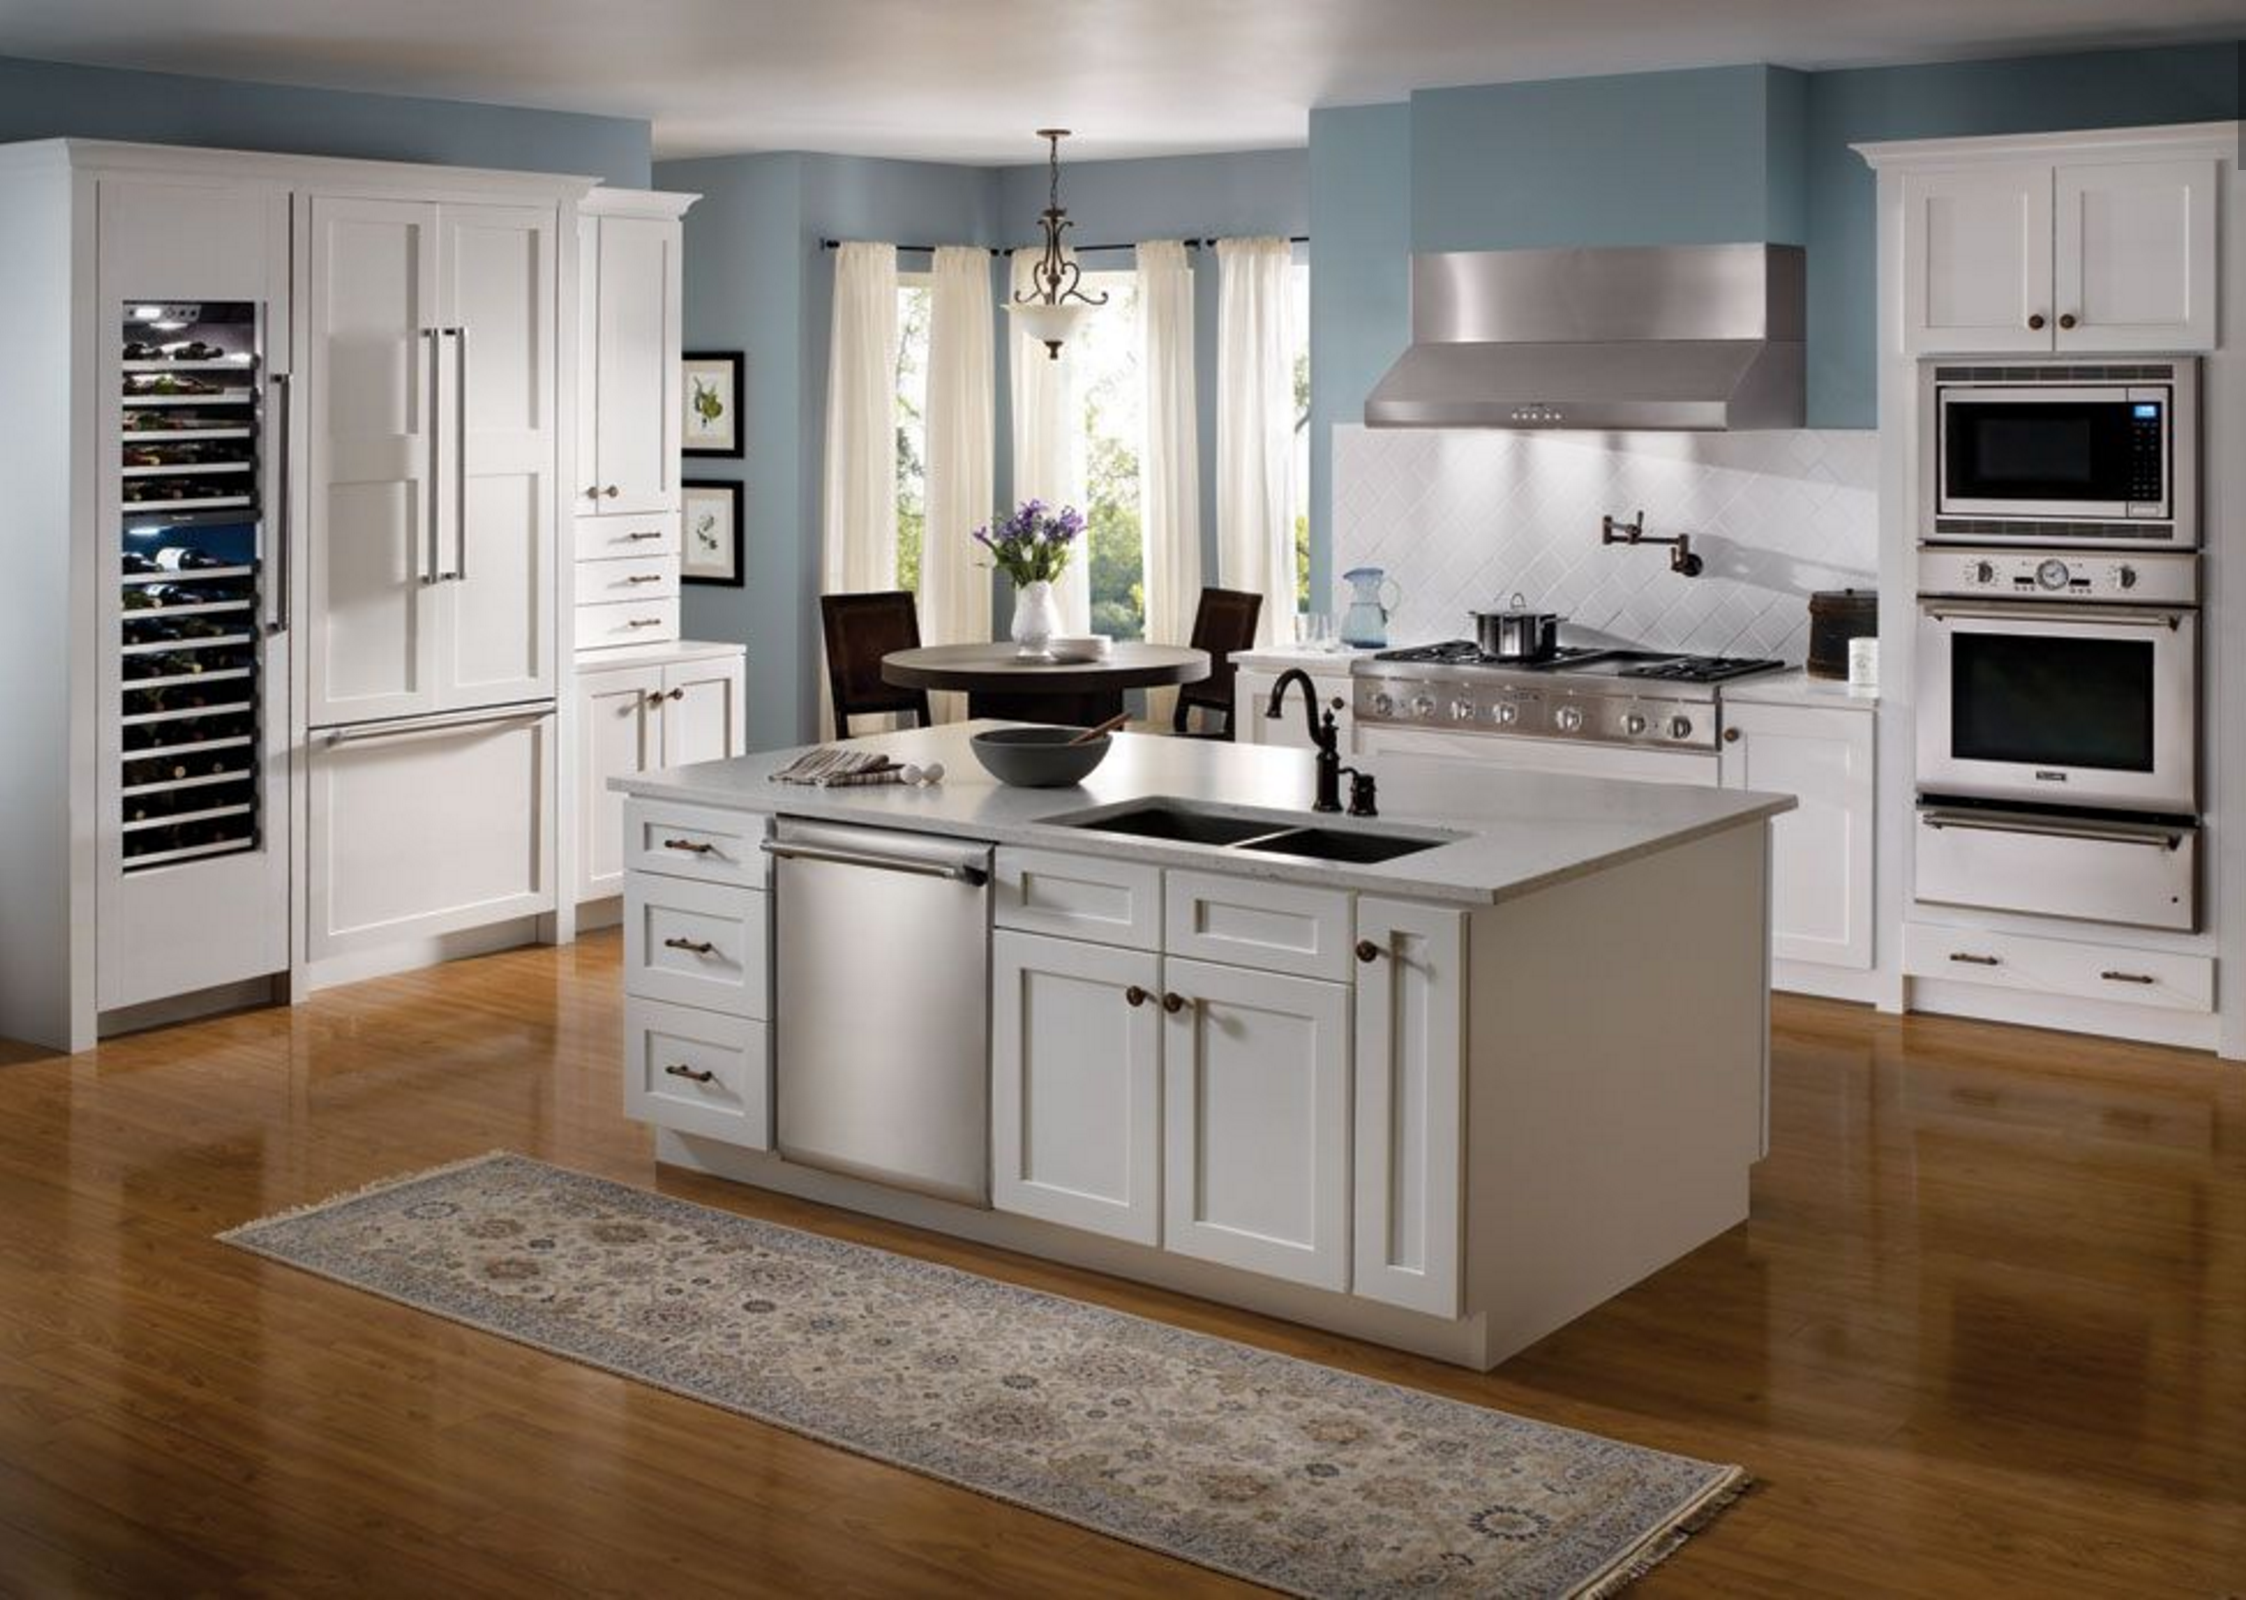 Best What's Your Favorite Detail In This Super Pleasant Kitchen 400 x 300